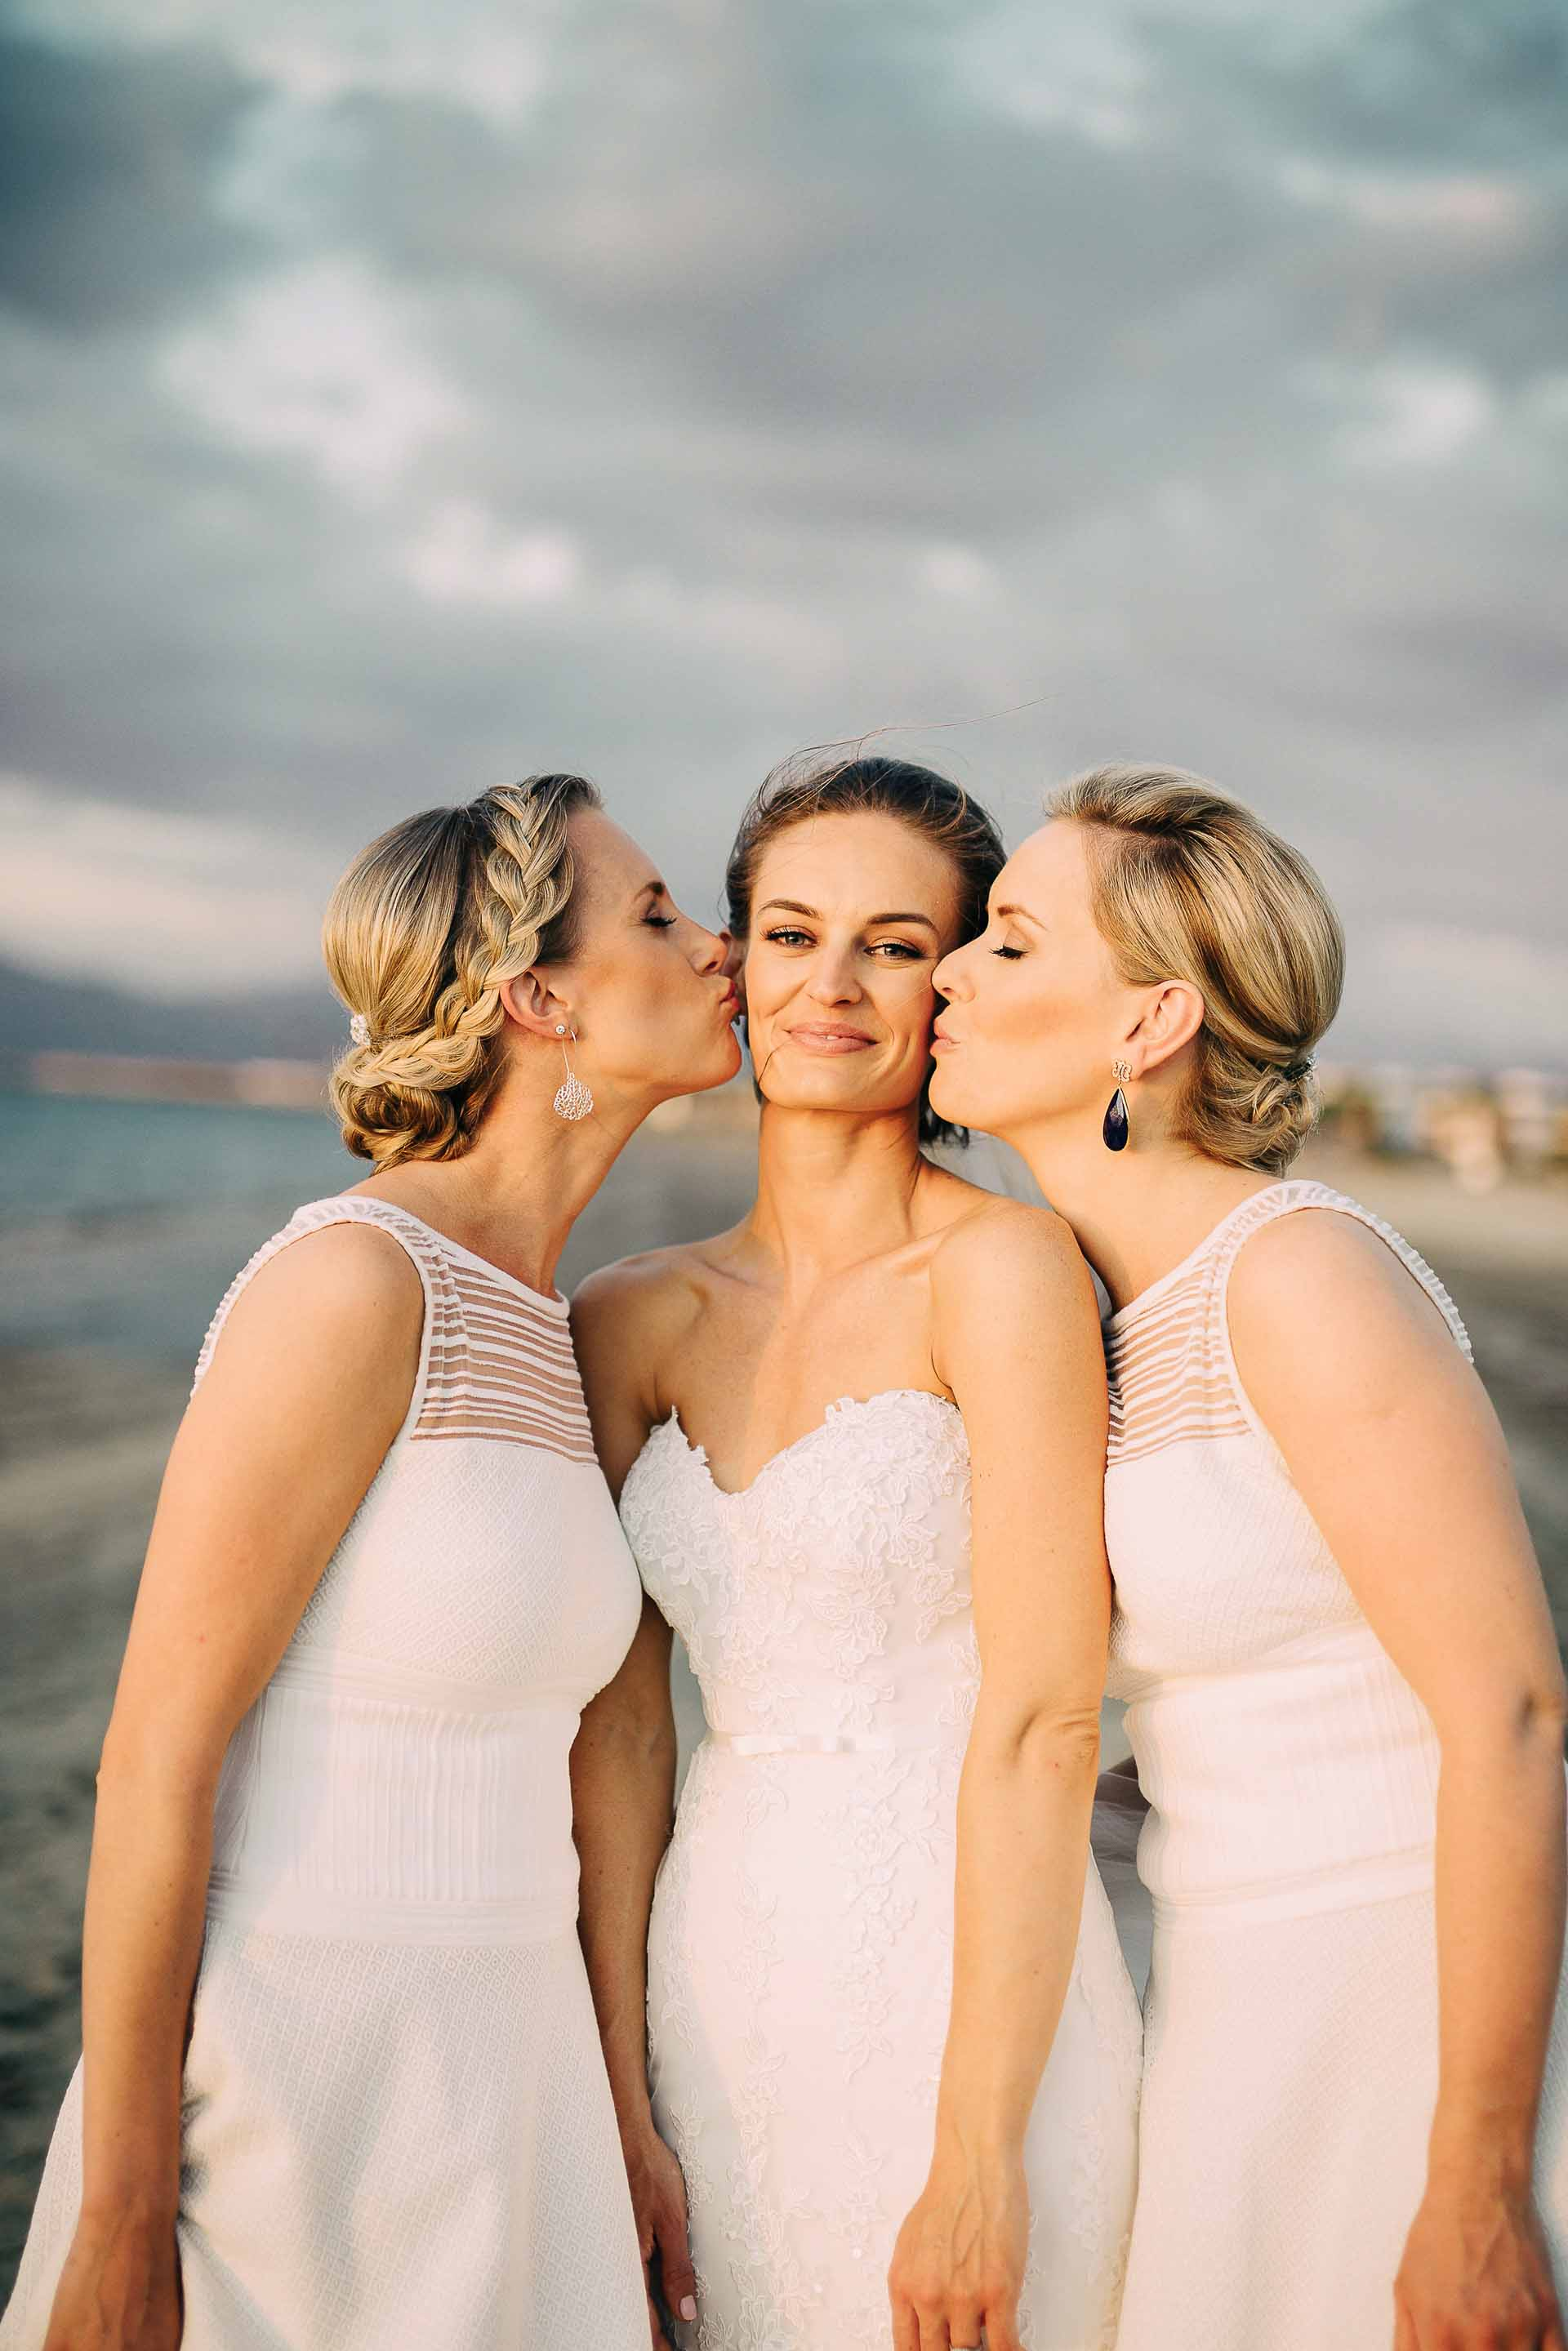 Fiji Bridesmaids kiss the Bride's cheeks in a fun girly moment.